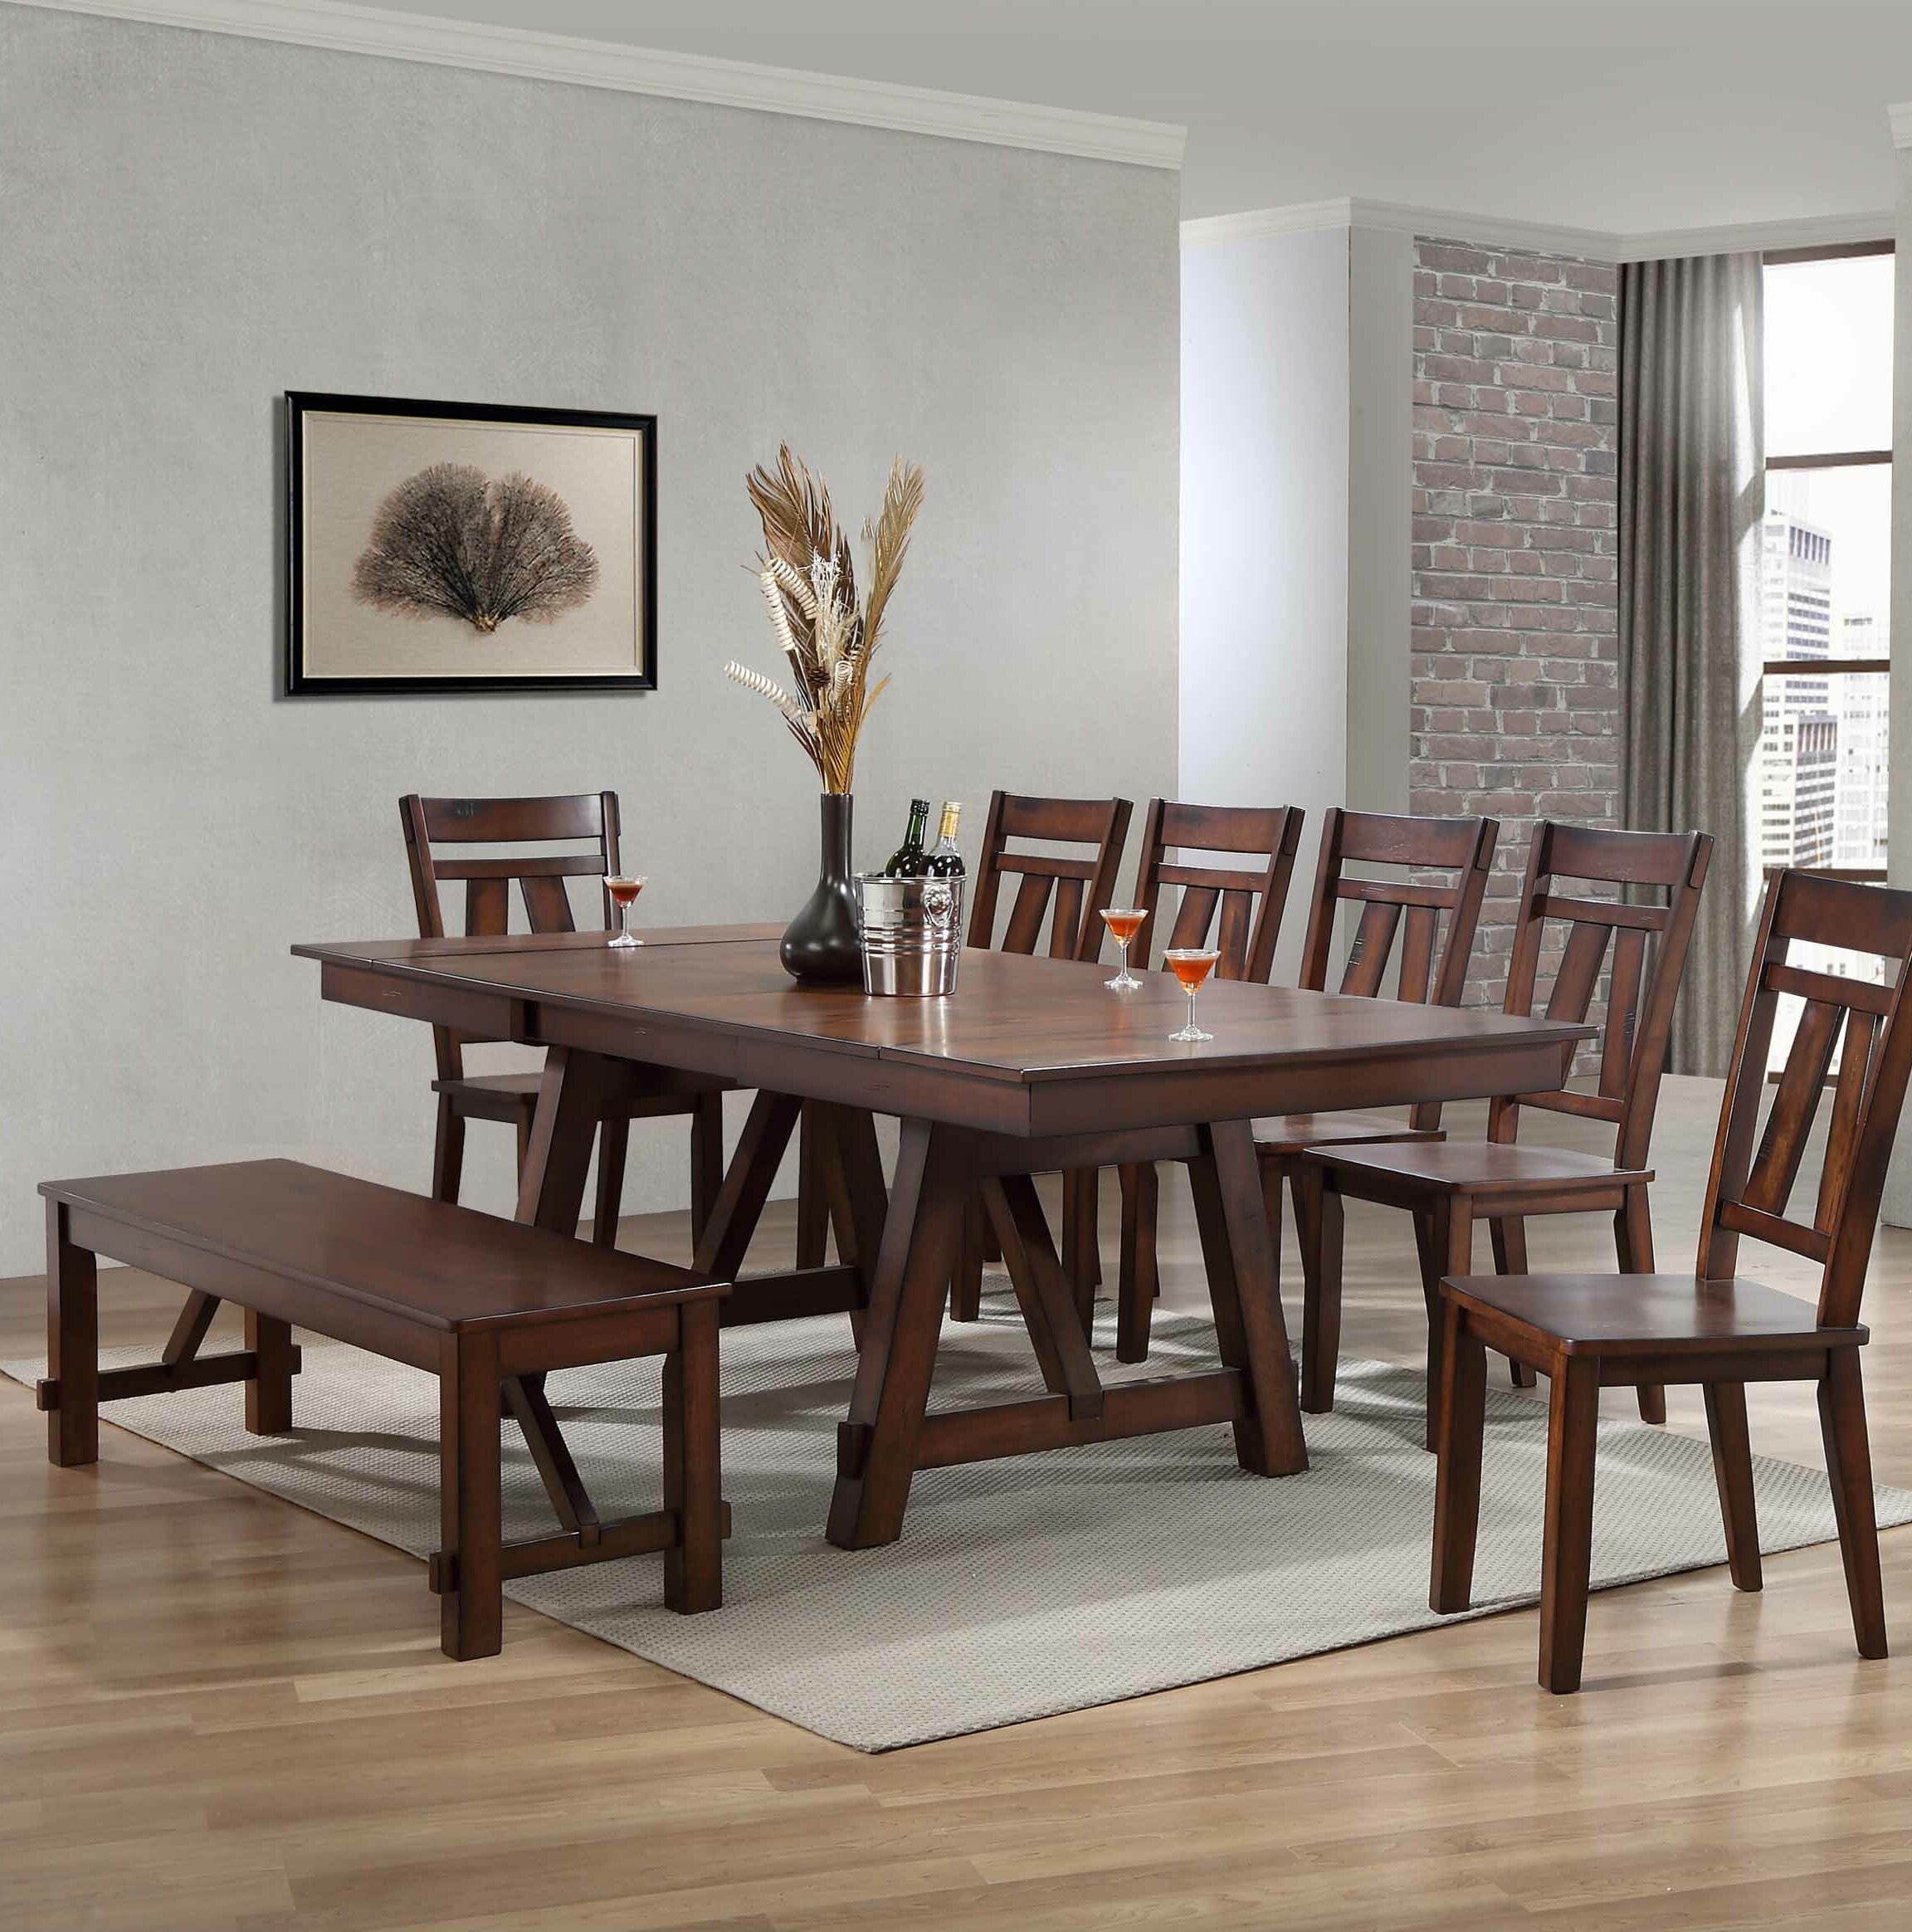 Keturah 6 Piece Extendable Dining Set